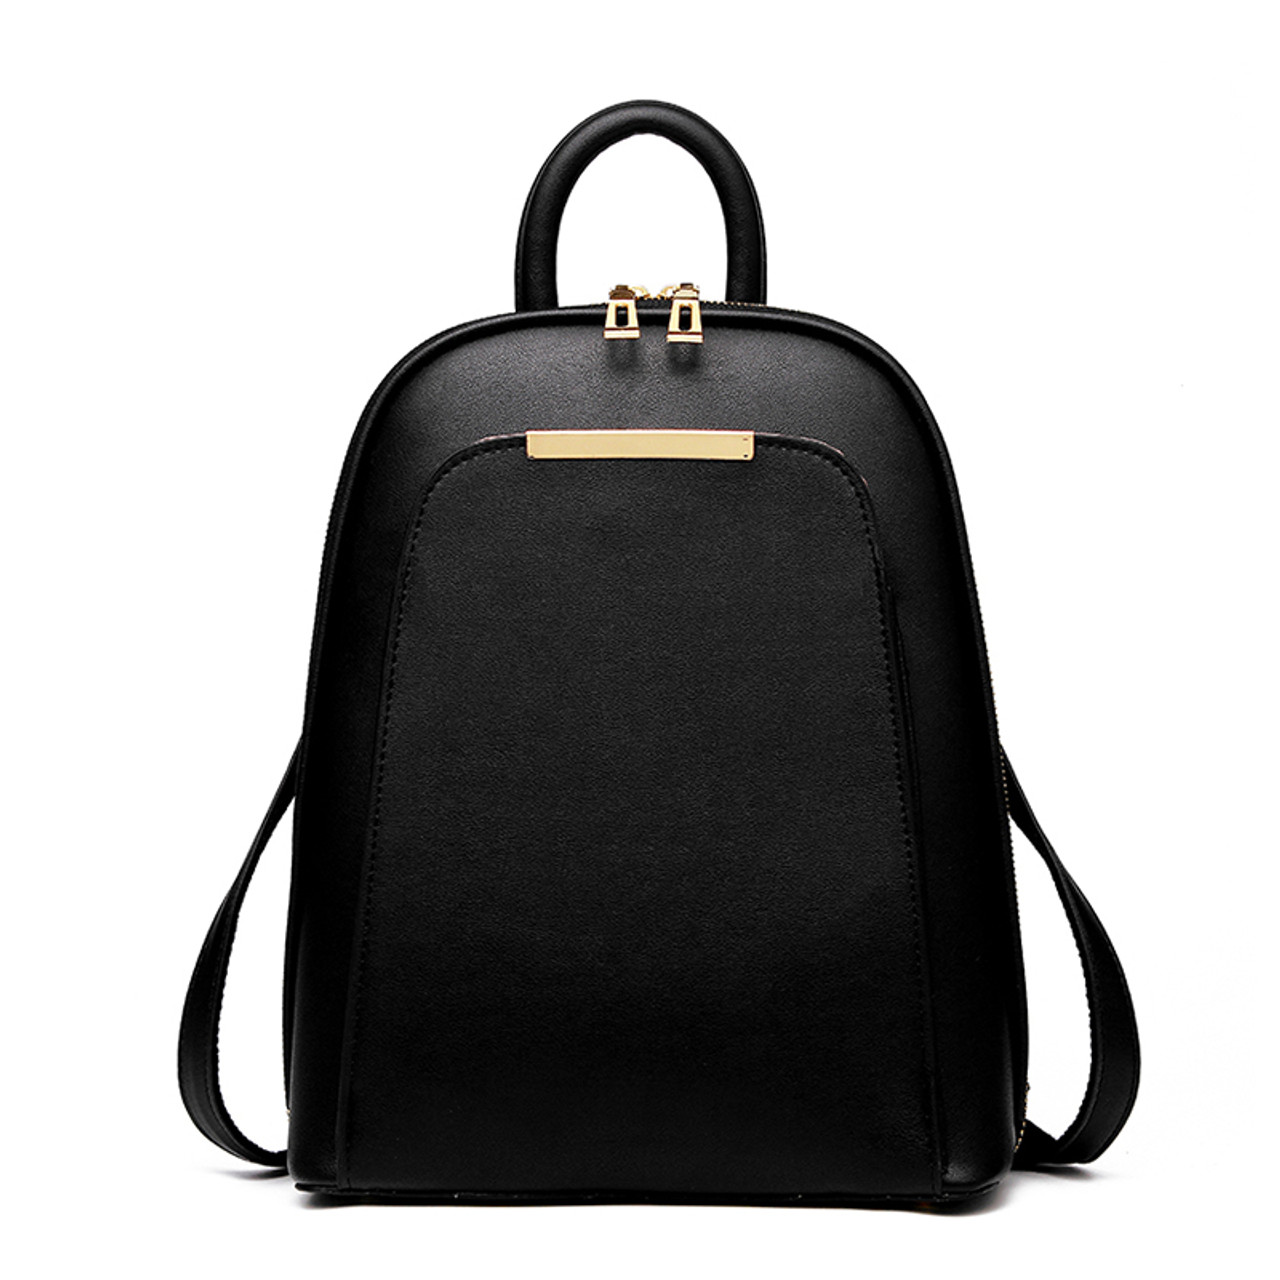 DIZHIGE Brand 2017 Solid High Quality PU Leather Backpack Women ...